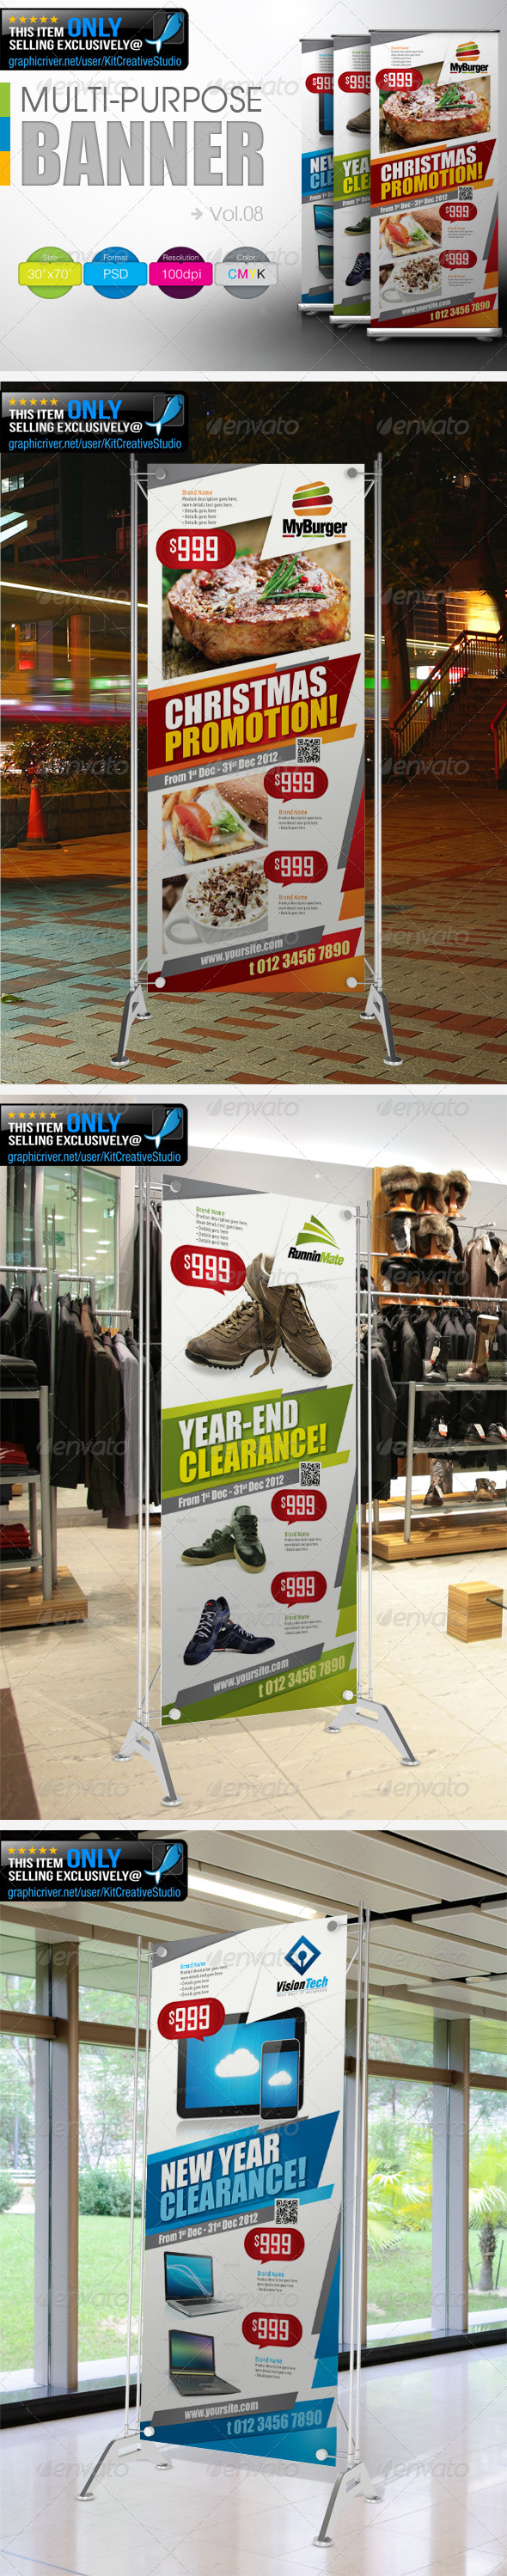 Multipurpose Promotional Banner Vol.8 - Signage Print Templates